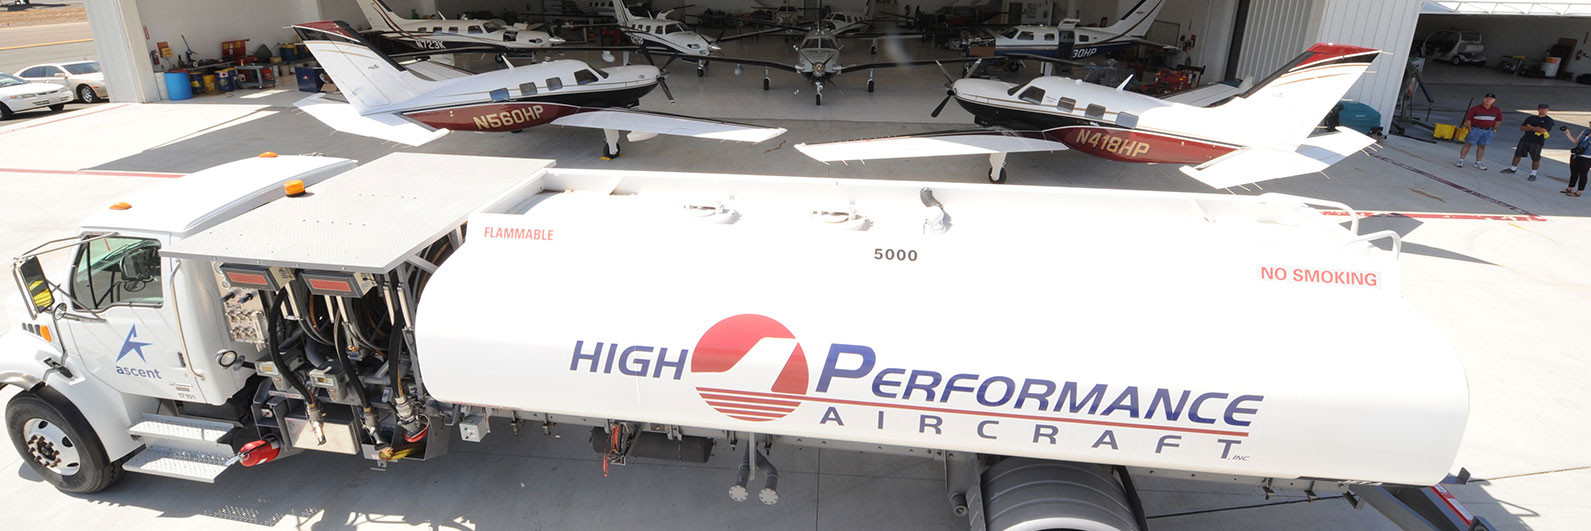 Fuel - High Performance Aircraft, Inc.